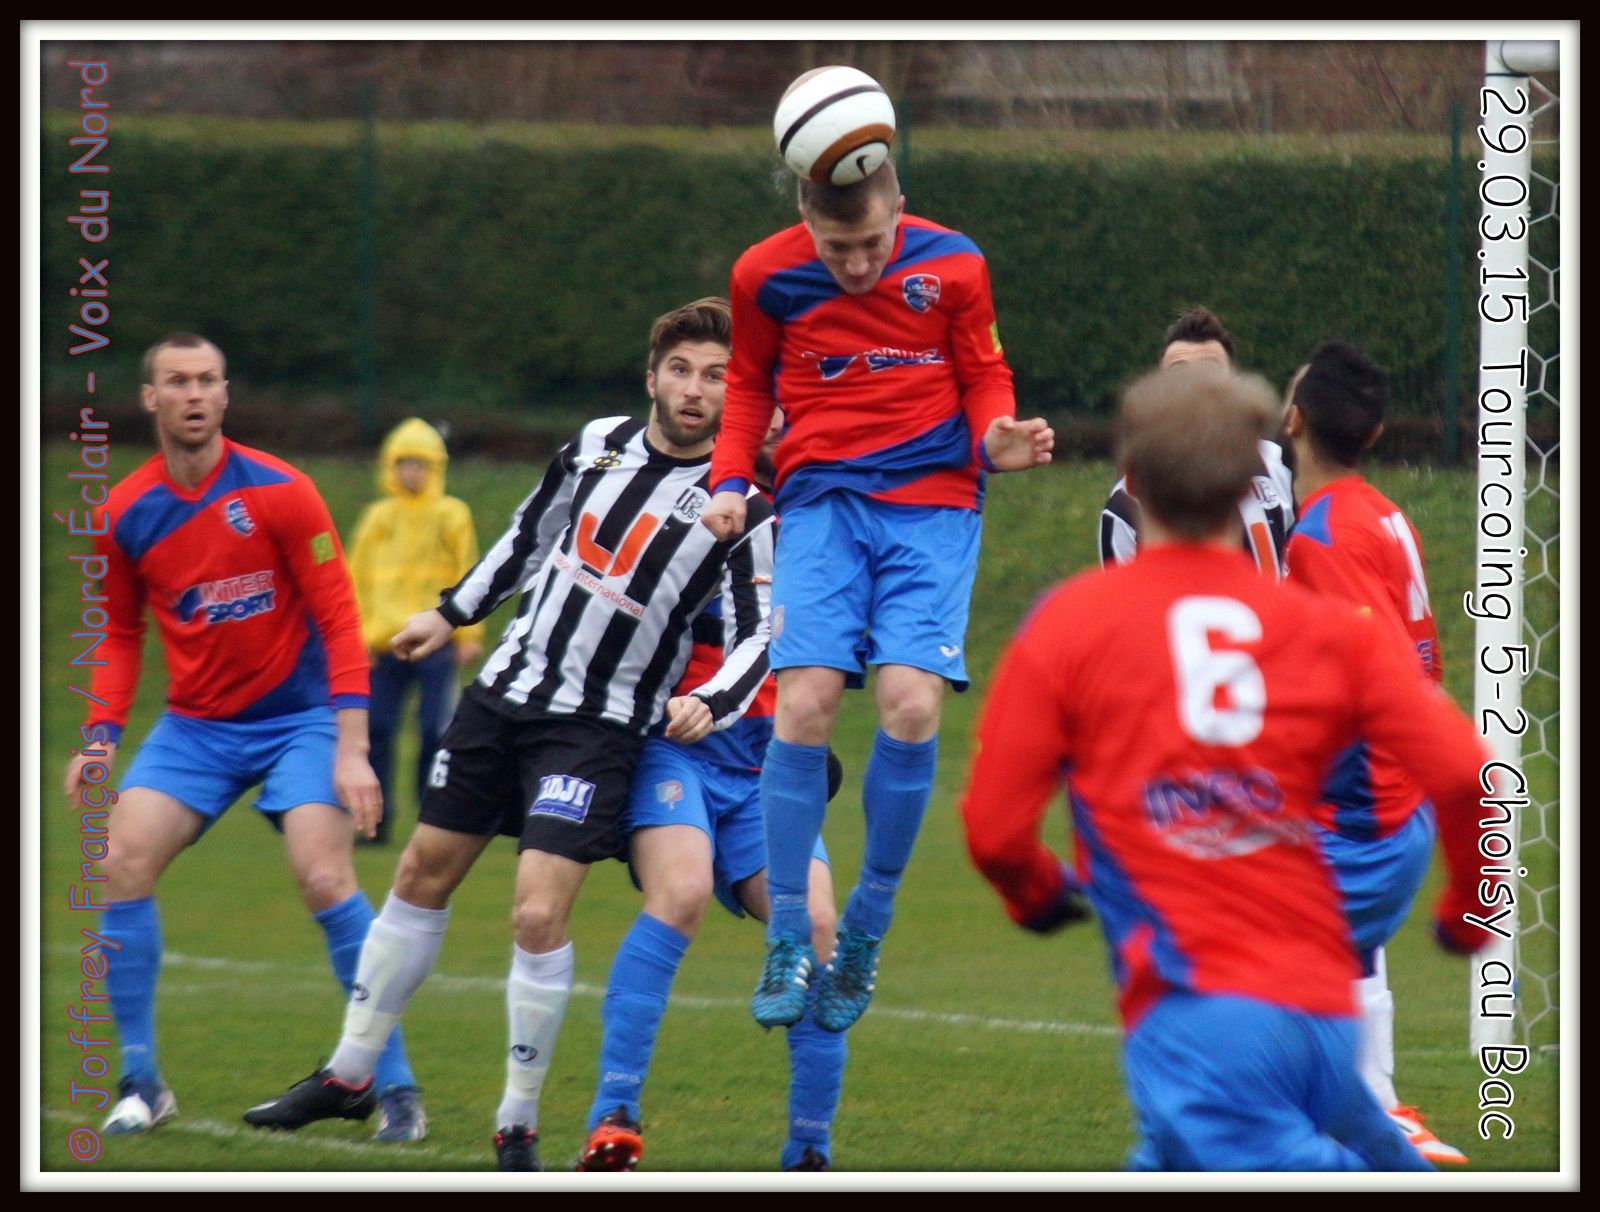 29.03.15 CFA 2 Tourcoing - Choisy au Bac